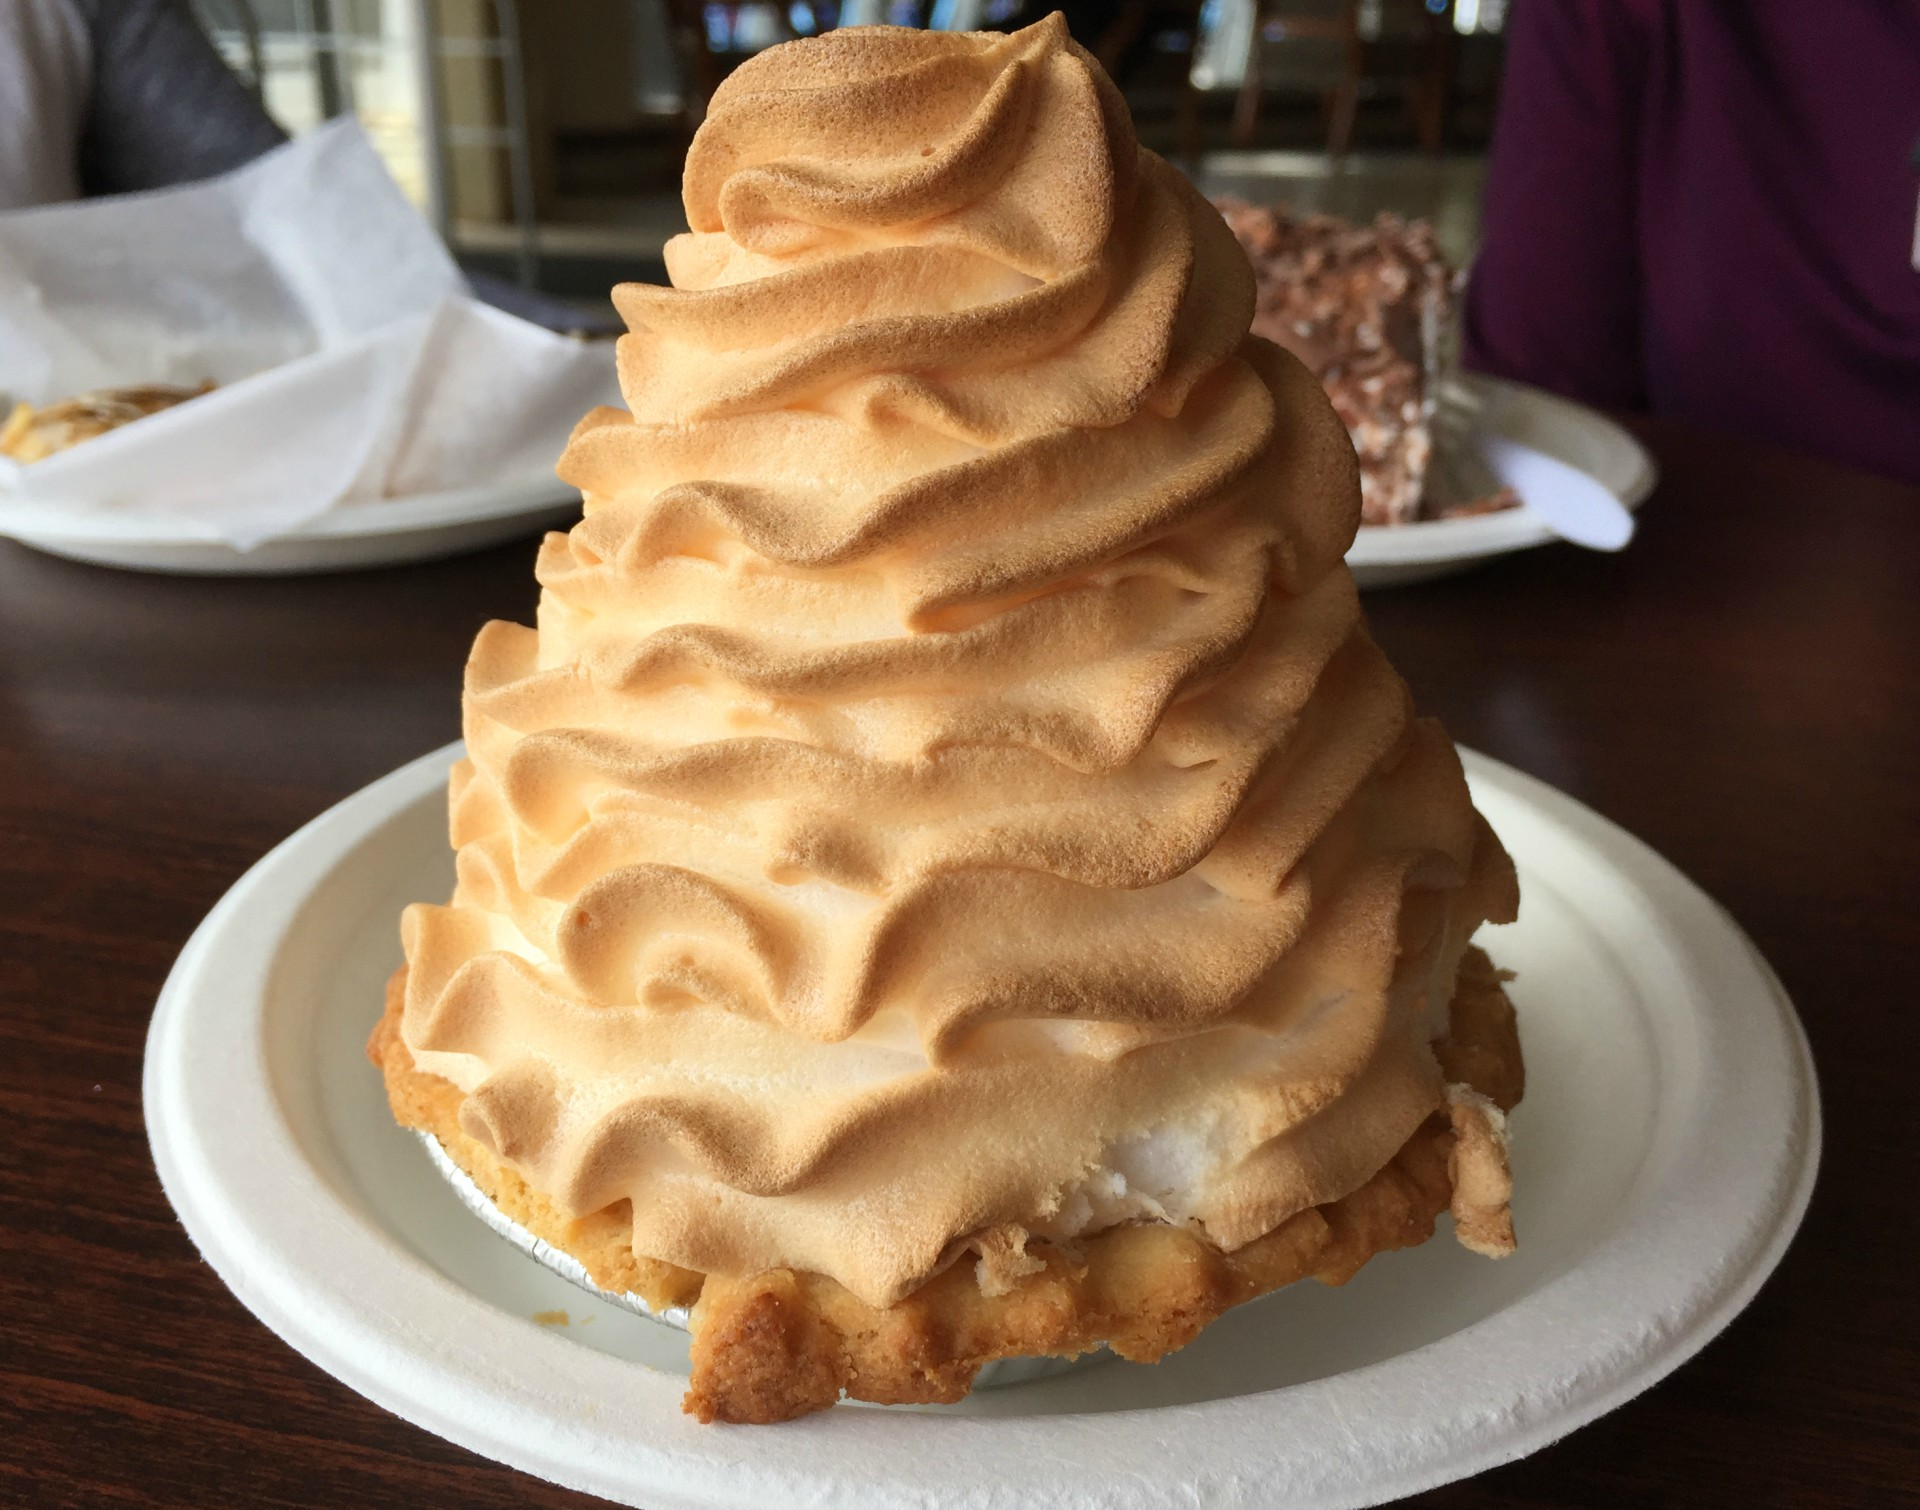 A lemon meringue tart from A Taste of Denmark.